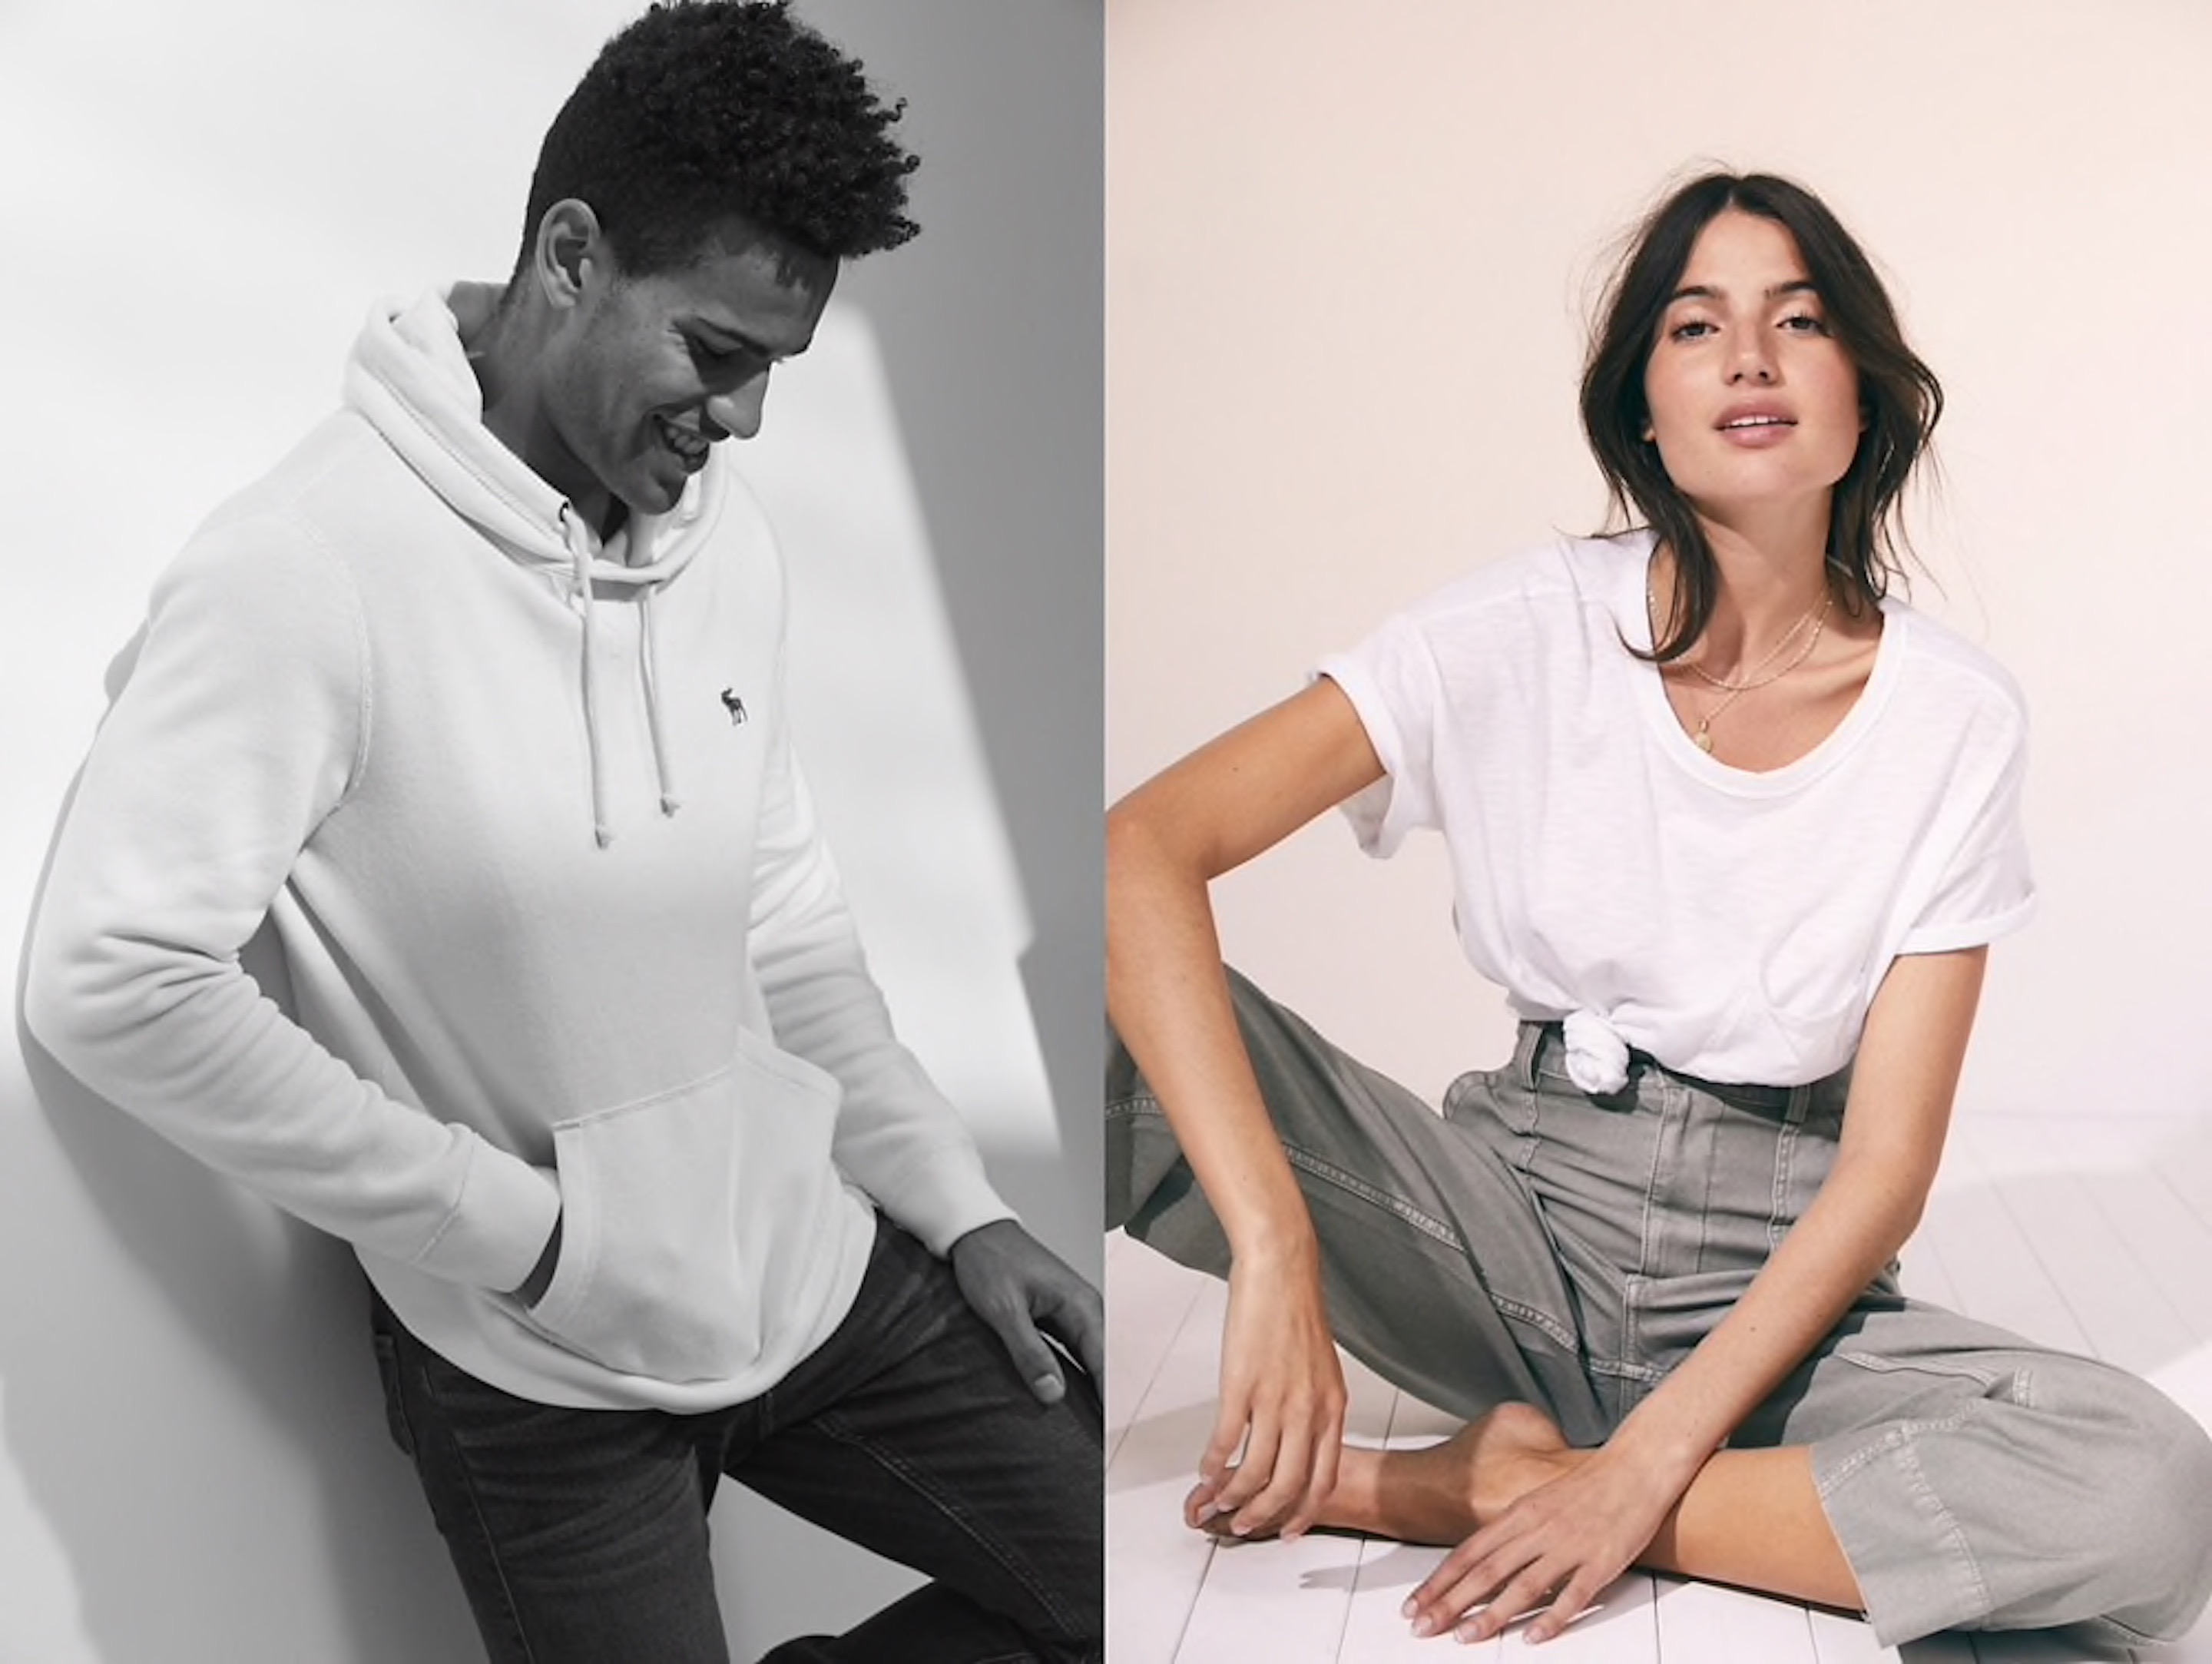 Abercrombie & Fitch summer fashions. The retailer will now sell cannabis-based body products.